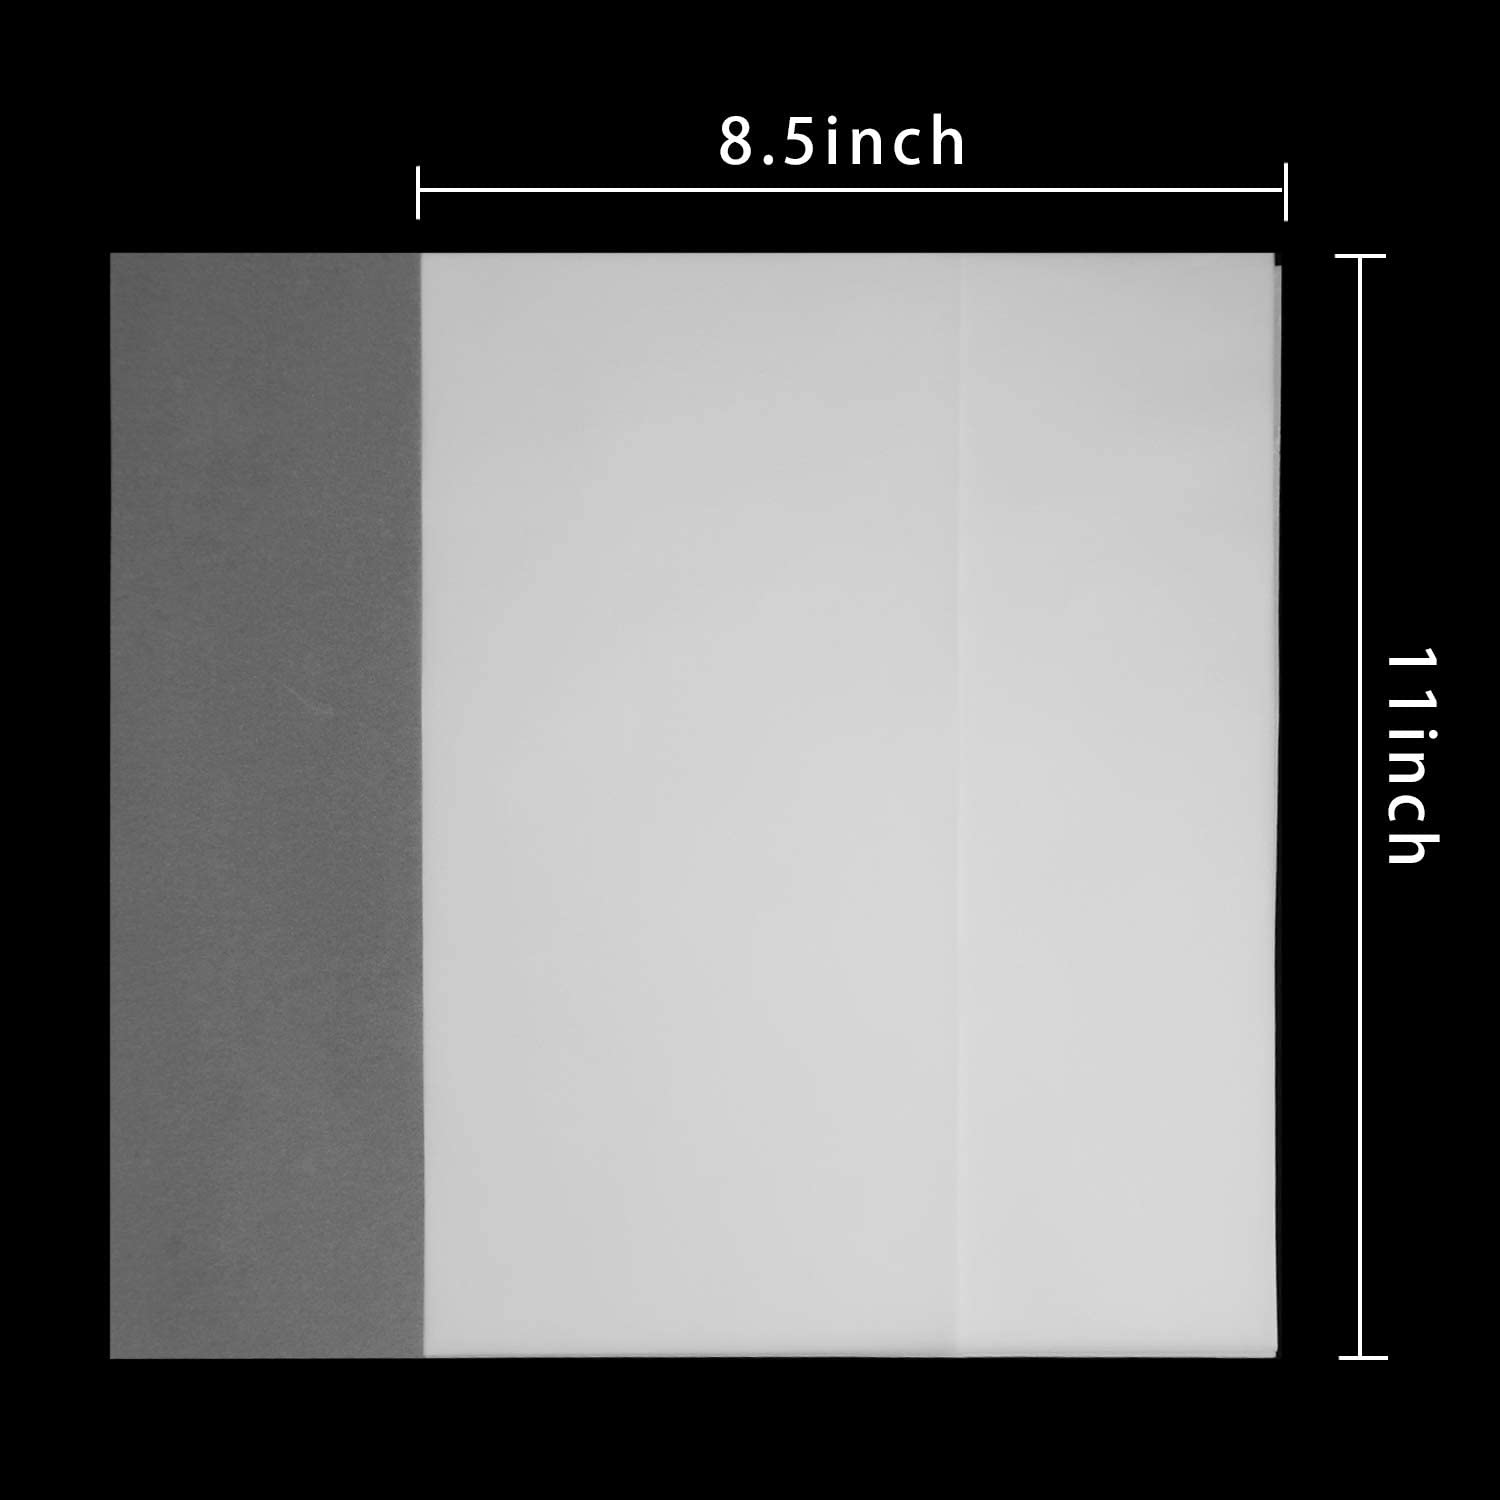 Translucent Vellum Paper 8.5 x 11 Inches 50 Sheets Printable Transparent Vellum Paper for Printing Sketching Tracing Drawing Animation